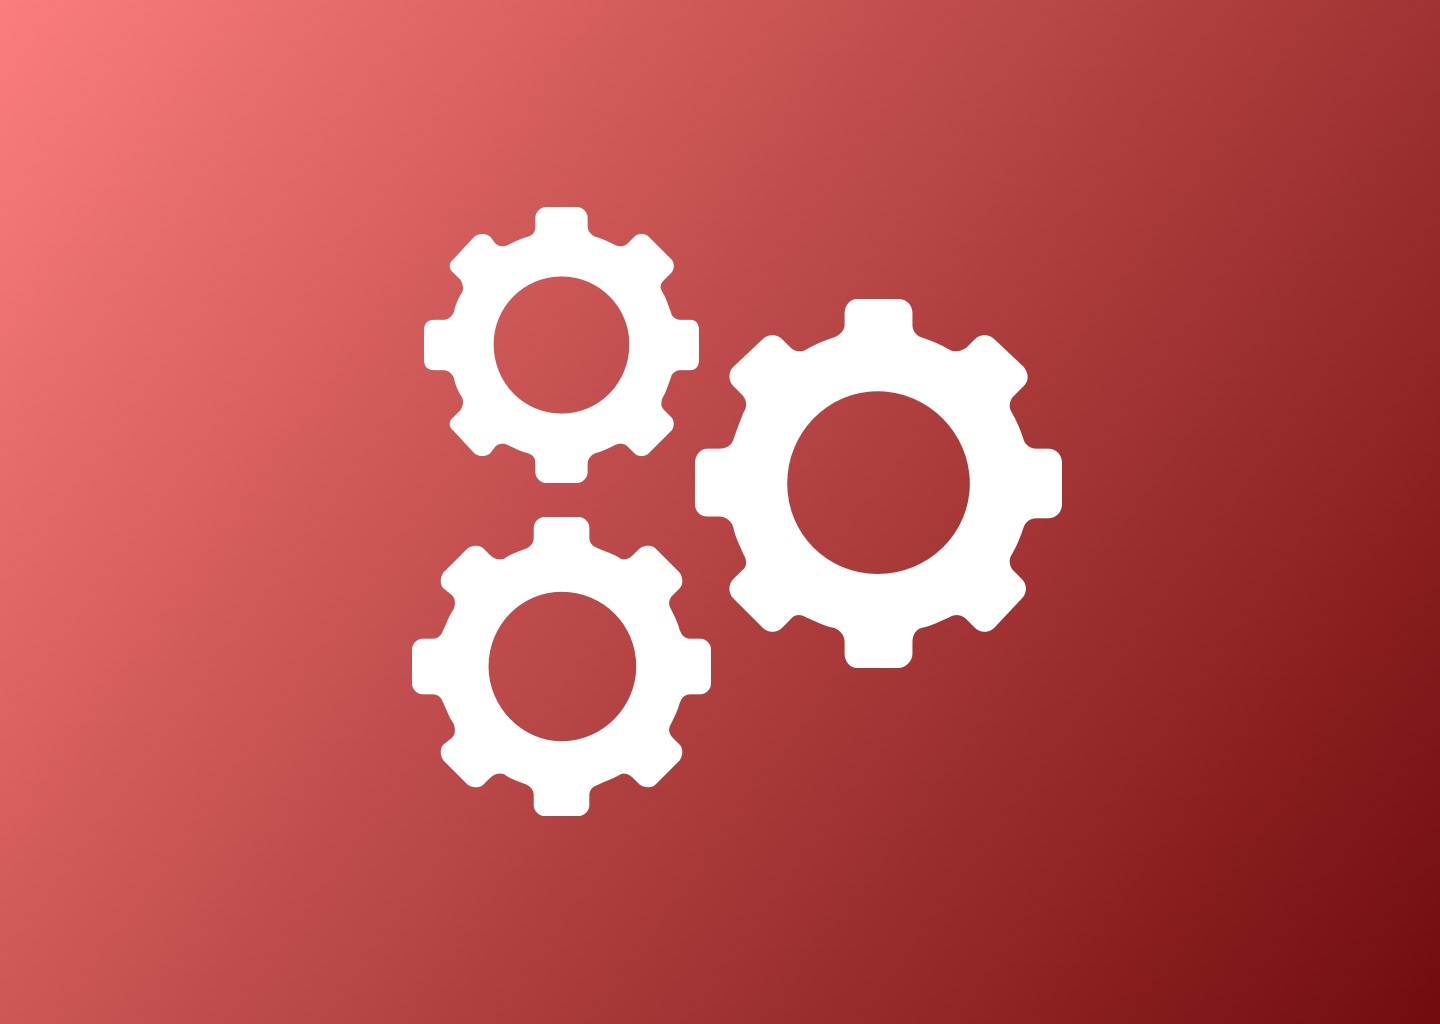 icon of gears on red gradient background